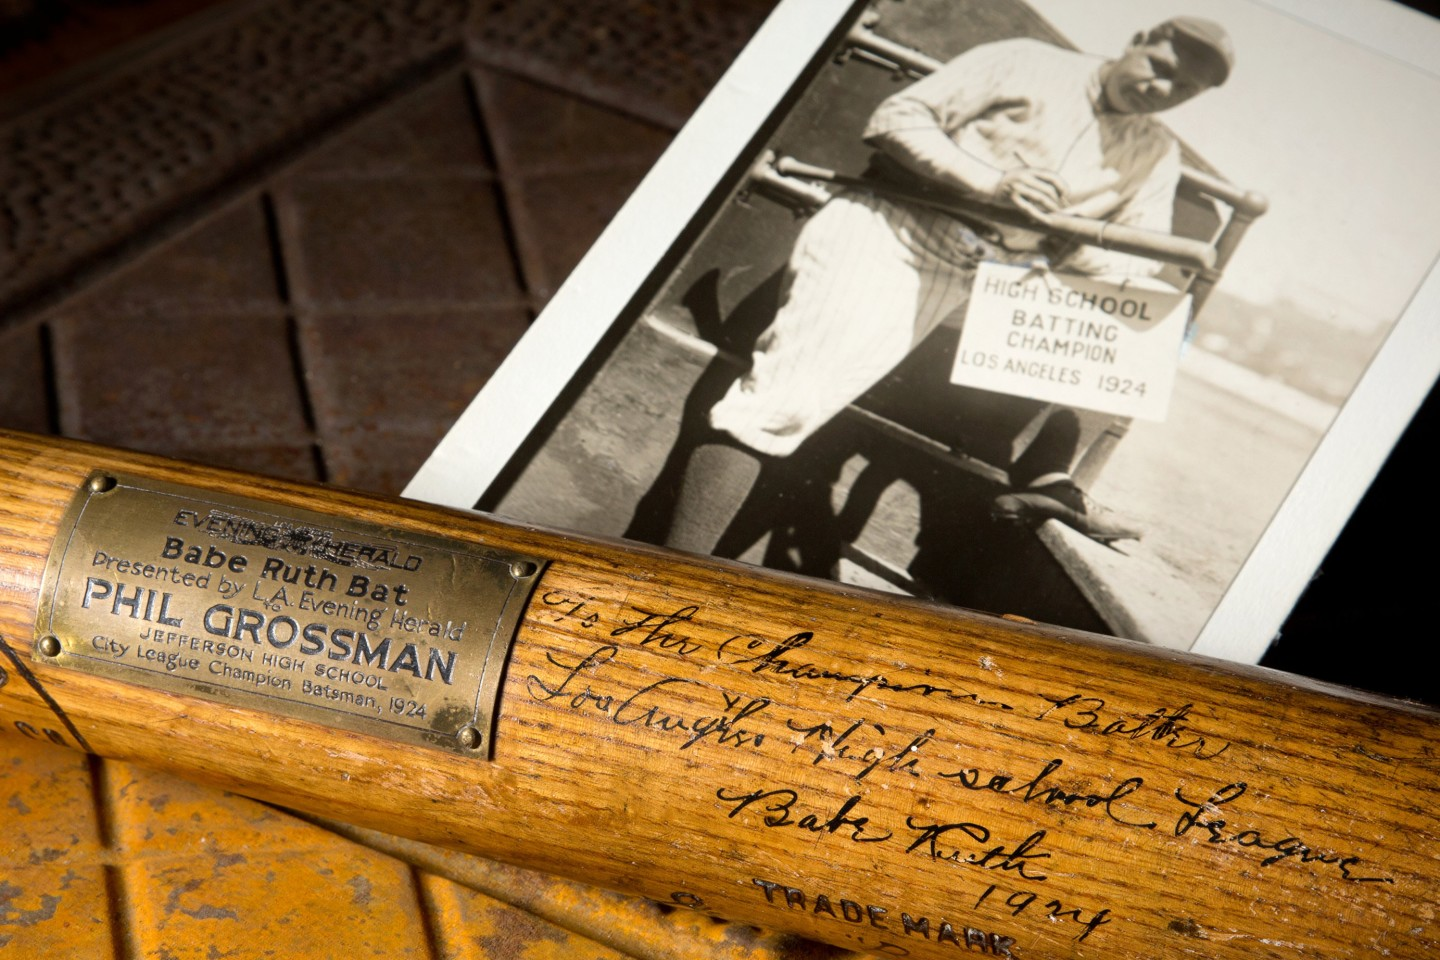 While this 1924 Babe Ruth Bat with which he hit the first home run of 1924 failed to sell, it had the highest reserve price of any baseball bat that has ever gone to auction $3.0 million) when it went to auction with Mears Auctions on December 1, 2018. The bat is signed by Babe Ruth and has an extraordinary provenance, ranted PSA/DNA GU 10.